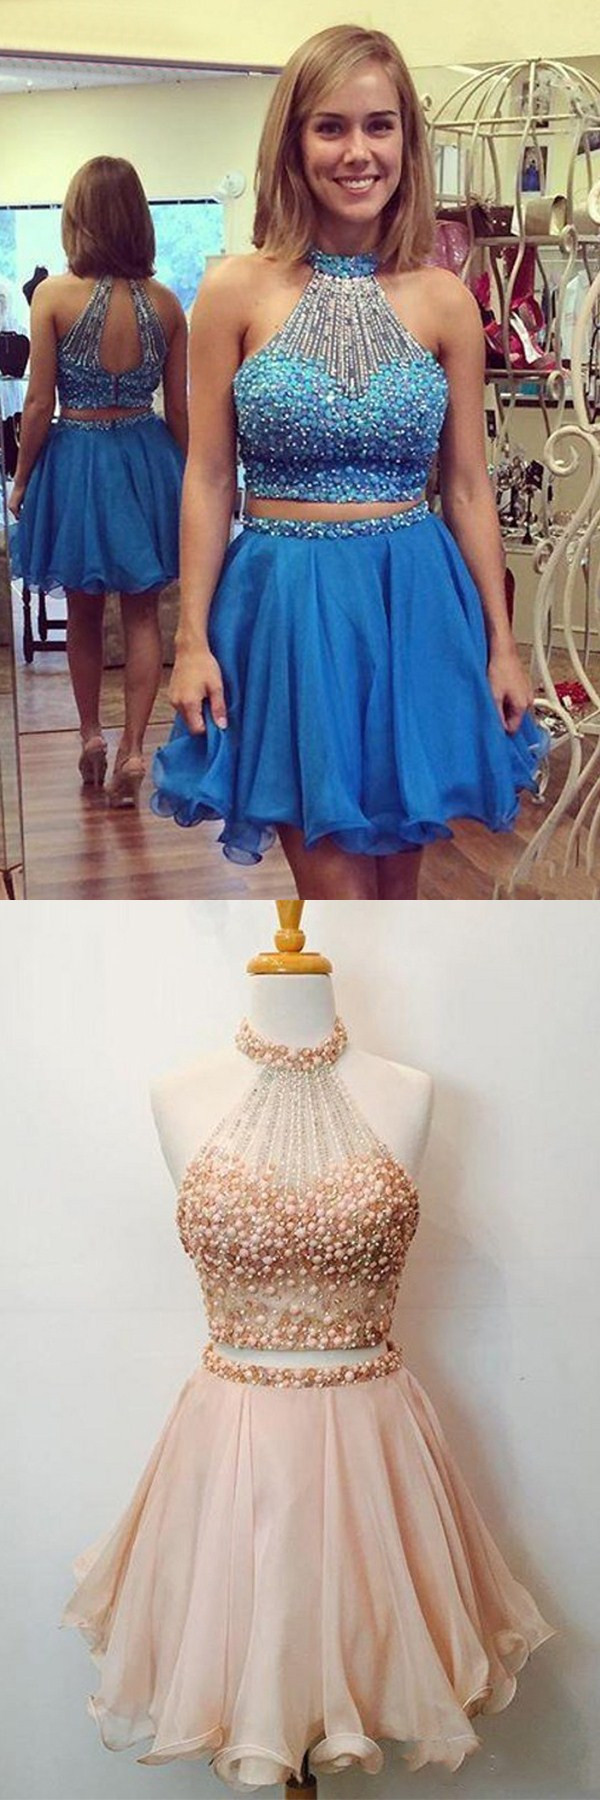 Nectarean two pieces halter sleeveless homecoming dress with beaded